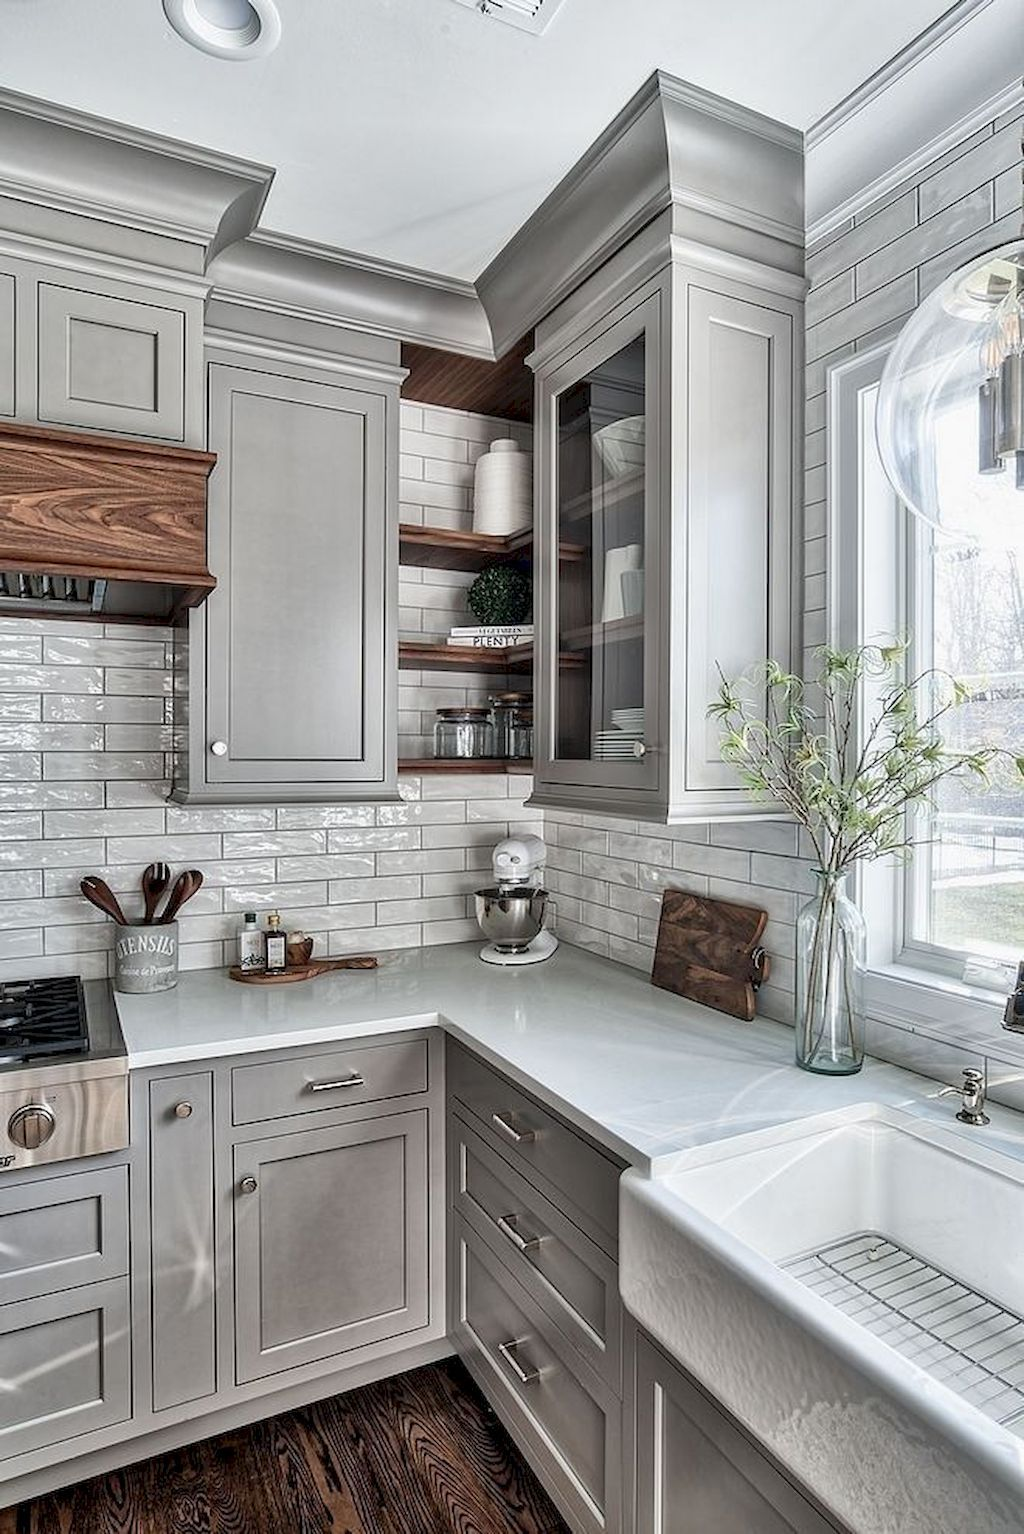 85 simple design for farmhouse gray kitchen cabinets ideas | home